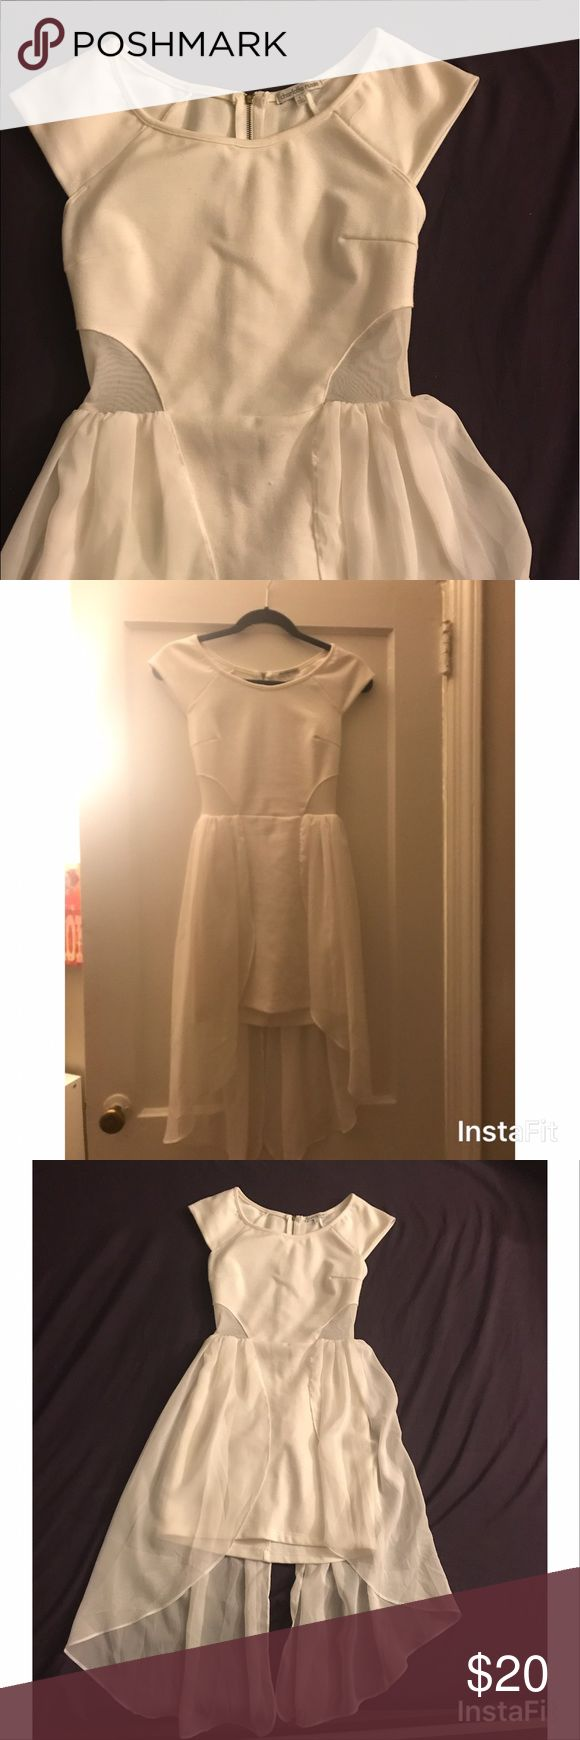 White Bachelorette Dress White dress from Charlotte Russe. High low detail and mesh only on the sides and exposed zipper in the back. Perfect for bachelorette, shower, or just a white dress because! Charlotte Russe Dresses High Low